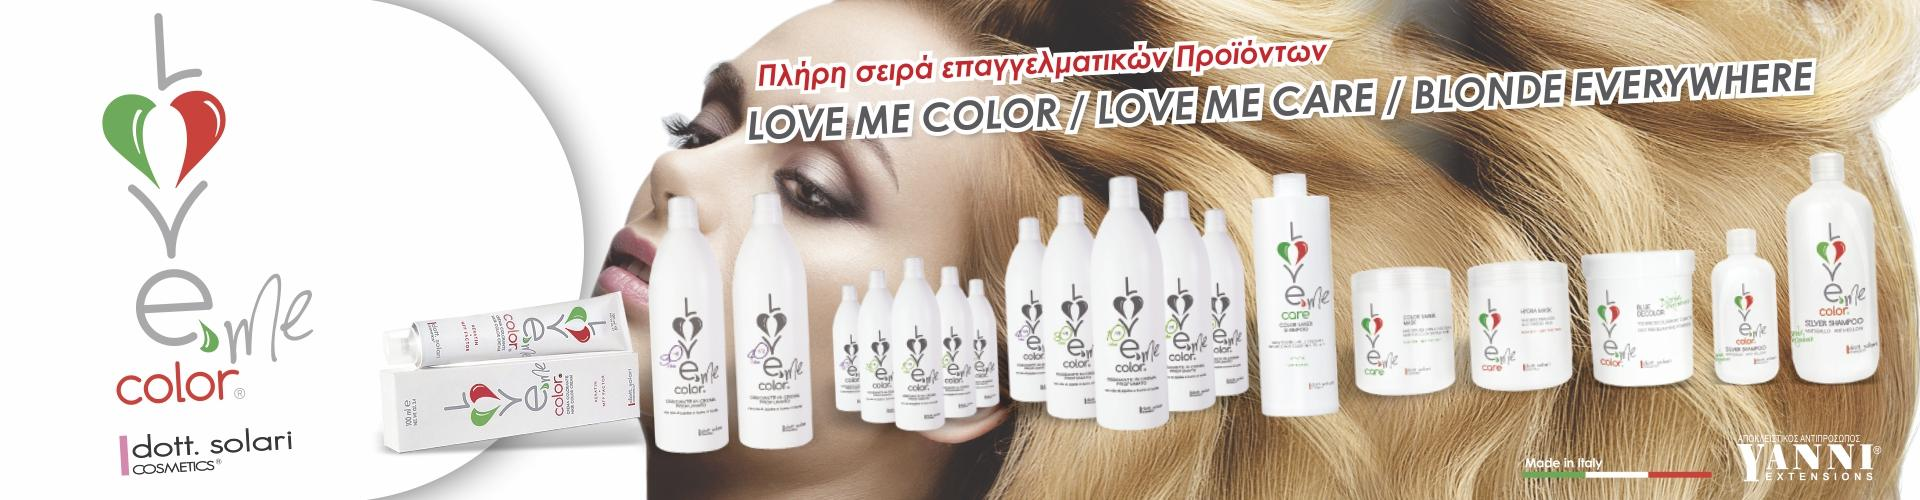 banner_love_me_color